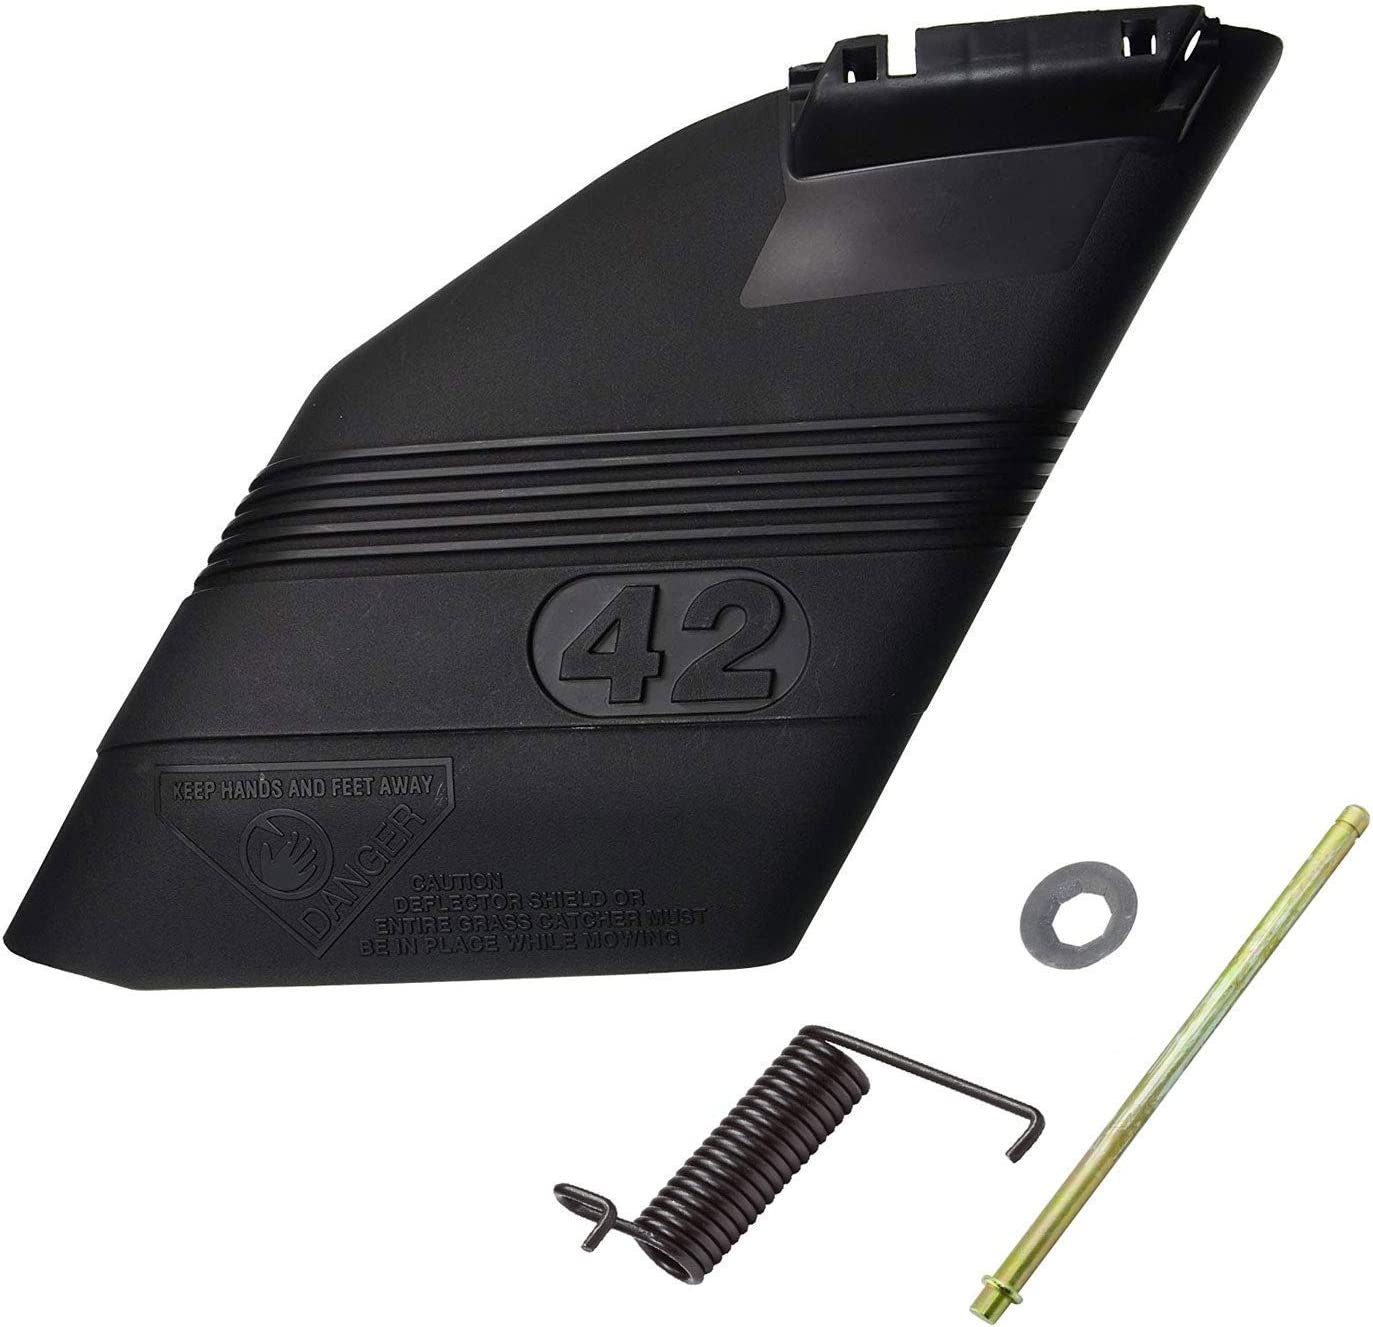 Deflector Shield for 130968X428 Craftsman Riding Mower Chute 42 Inch New